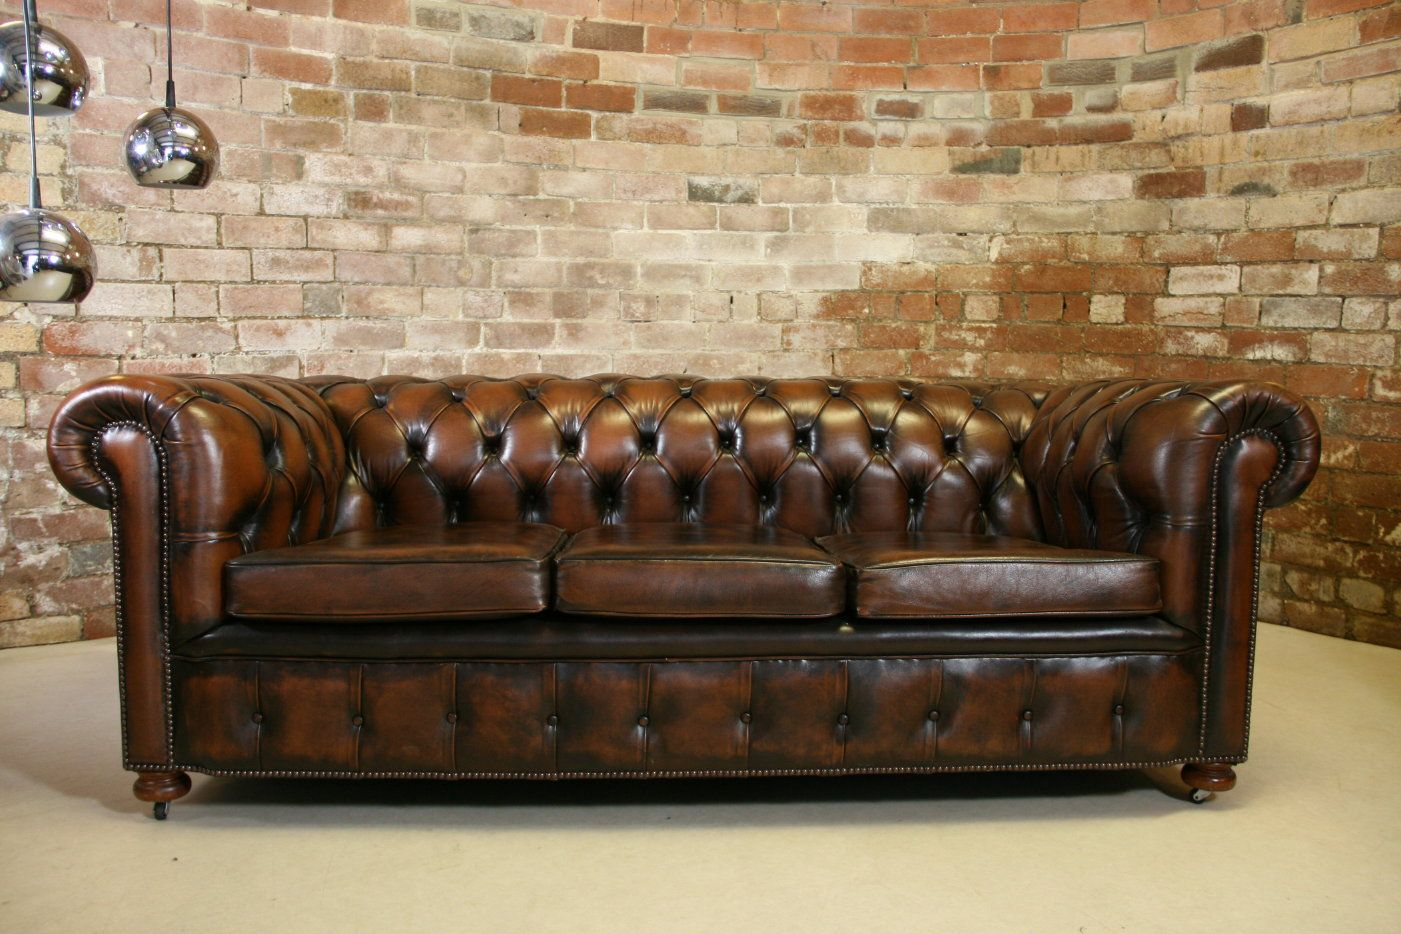 vintage chesterfield antique brown leather 3 seater sofa retro buttoned couch chesterfield. Black Bedroom Furniture Sets. Home Design Ideas